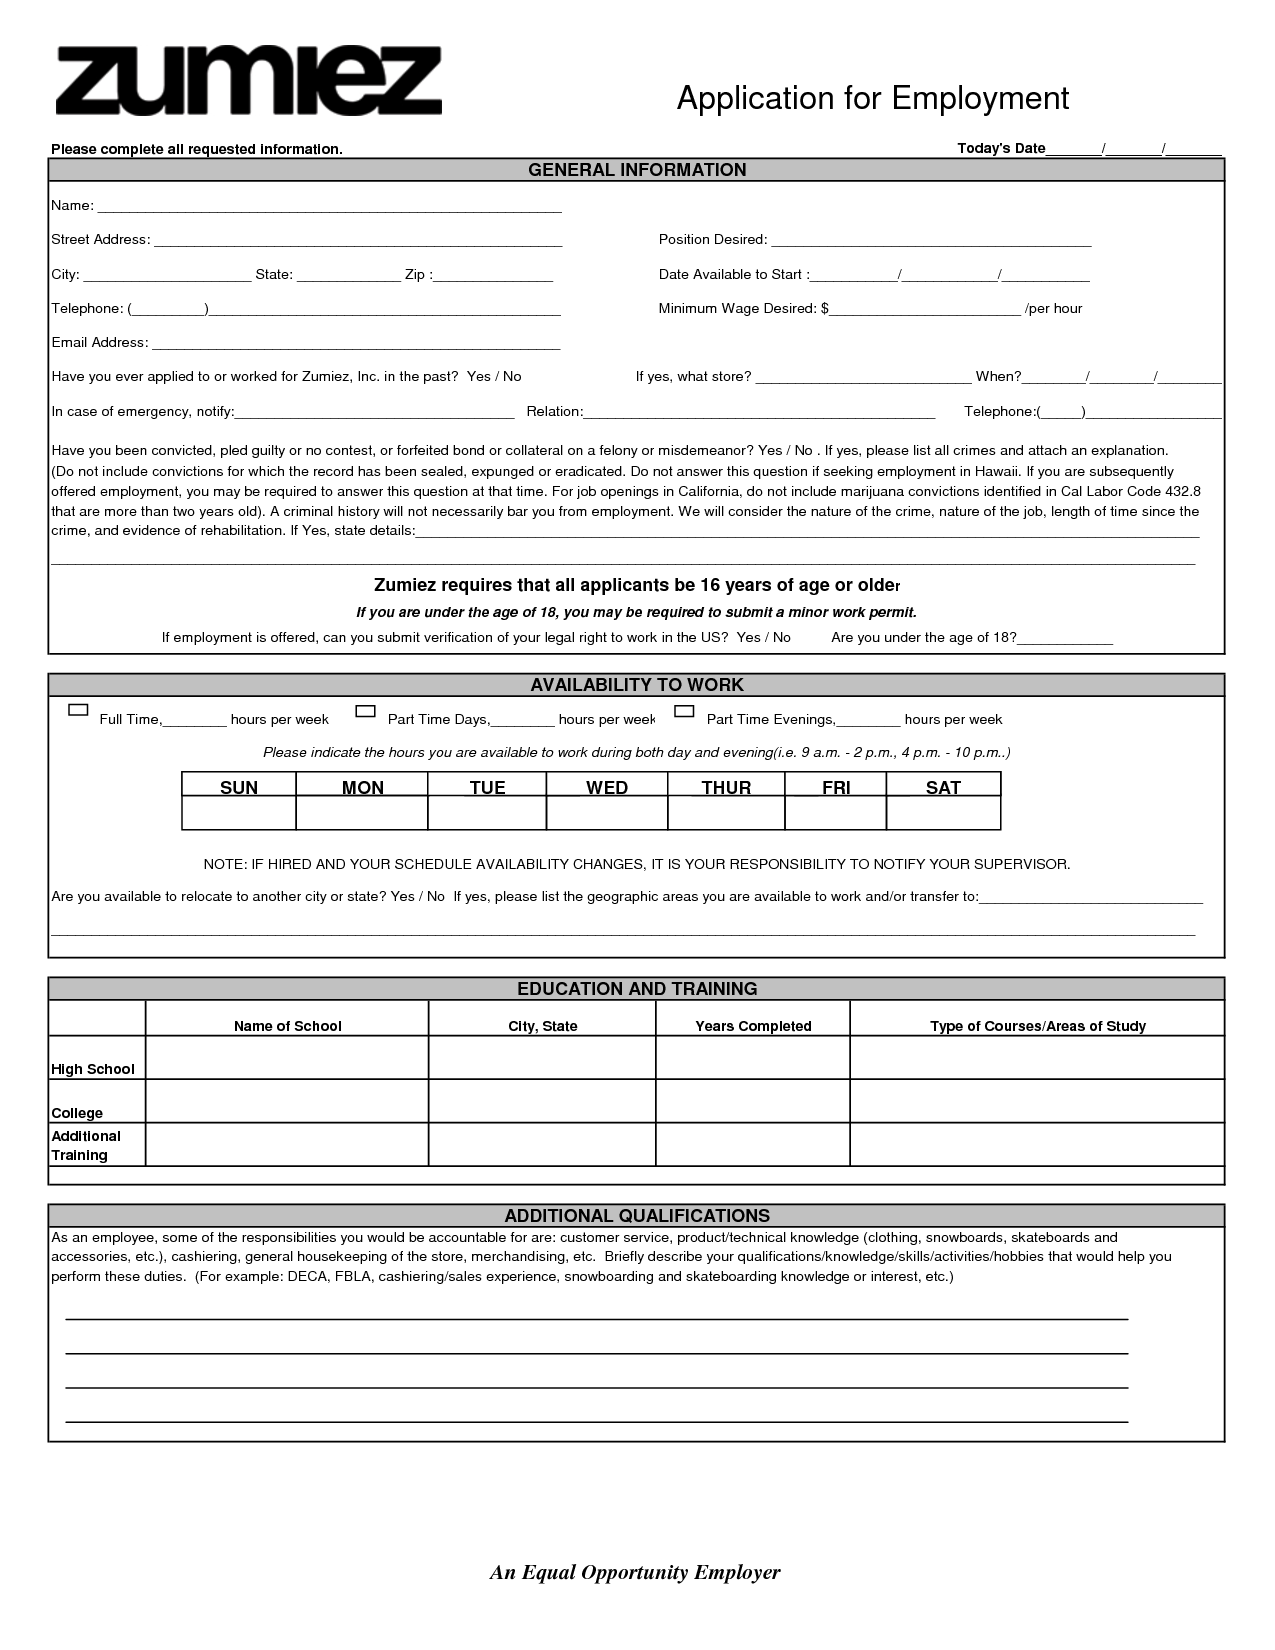 Watch more like Hot Topic Application Print Out – Printable Application